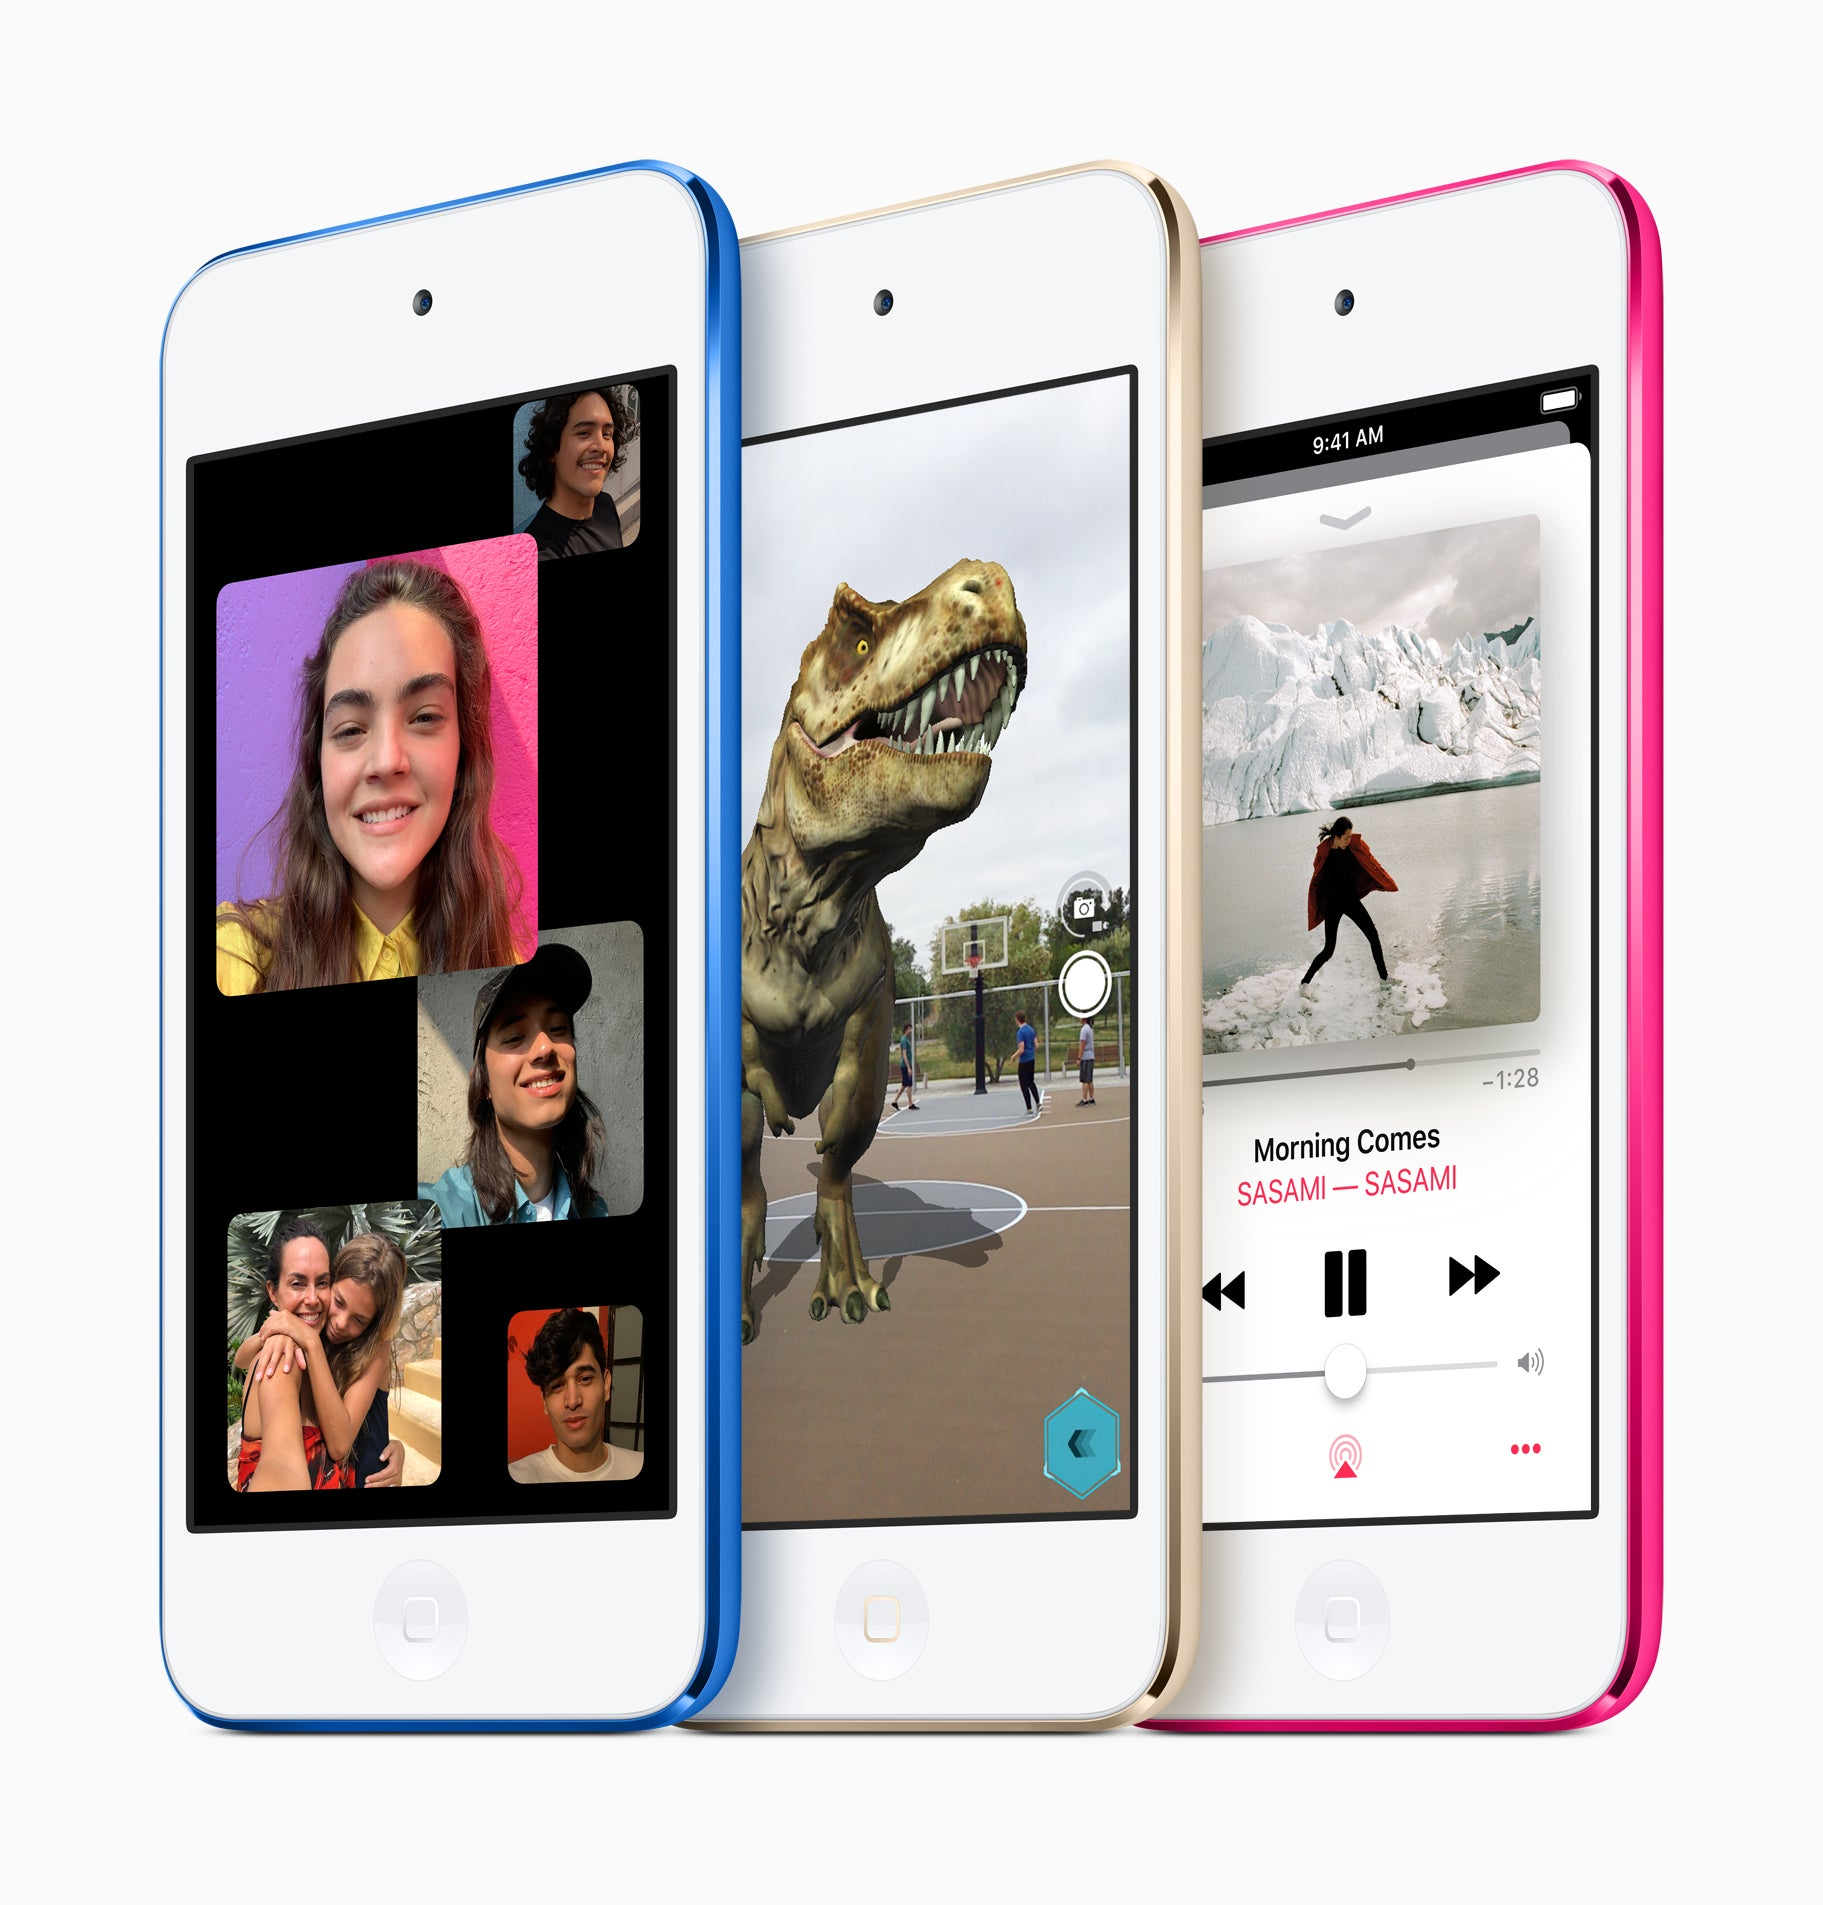 5 reasons you might actually want to buy the new iPod Touch